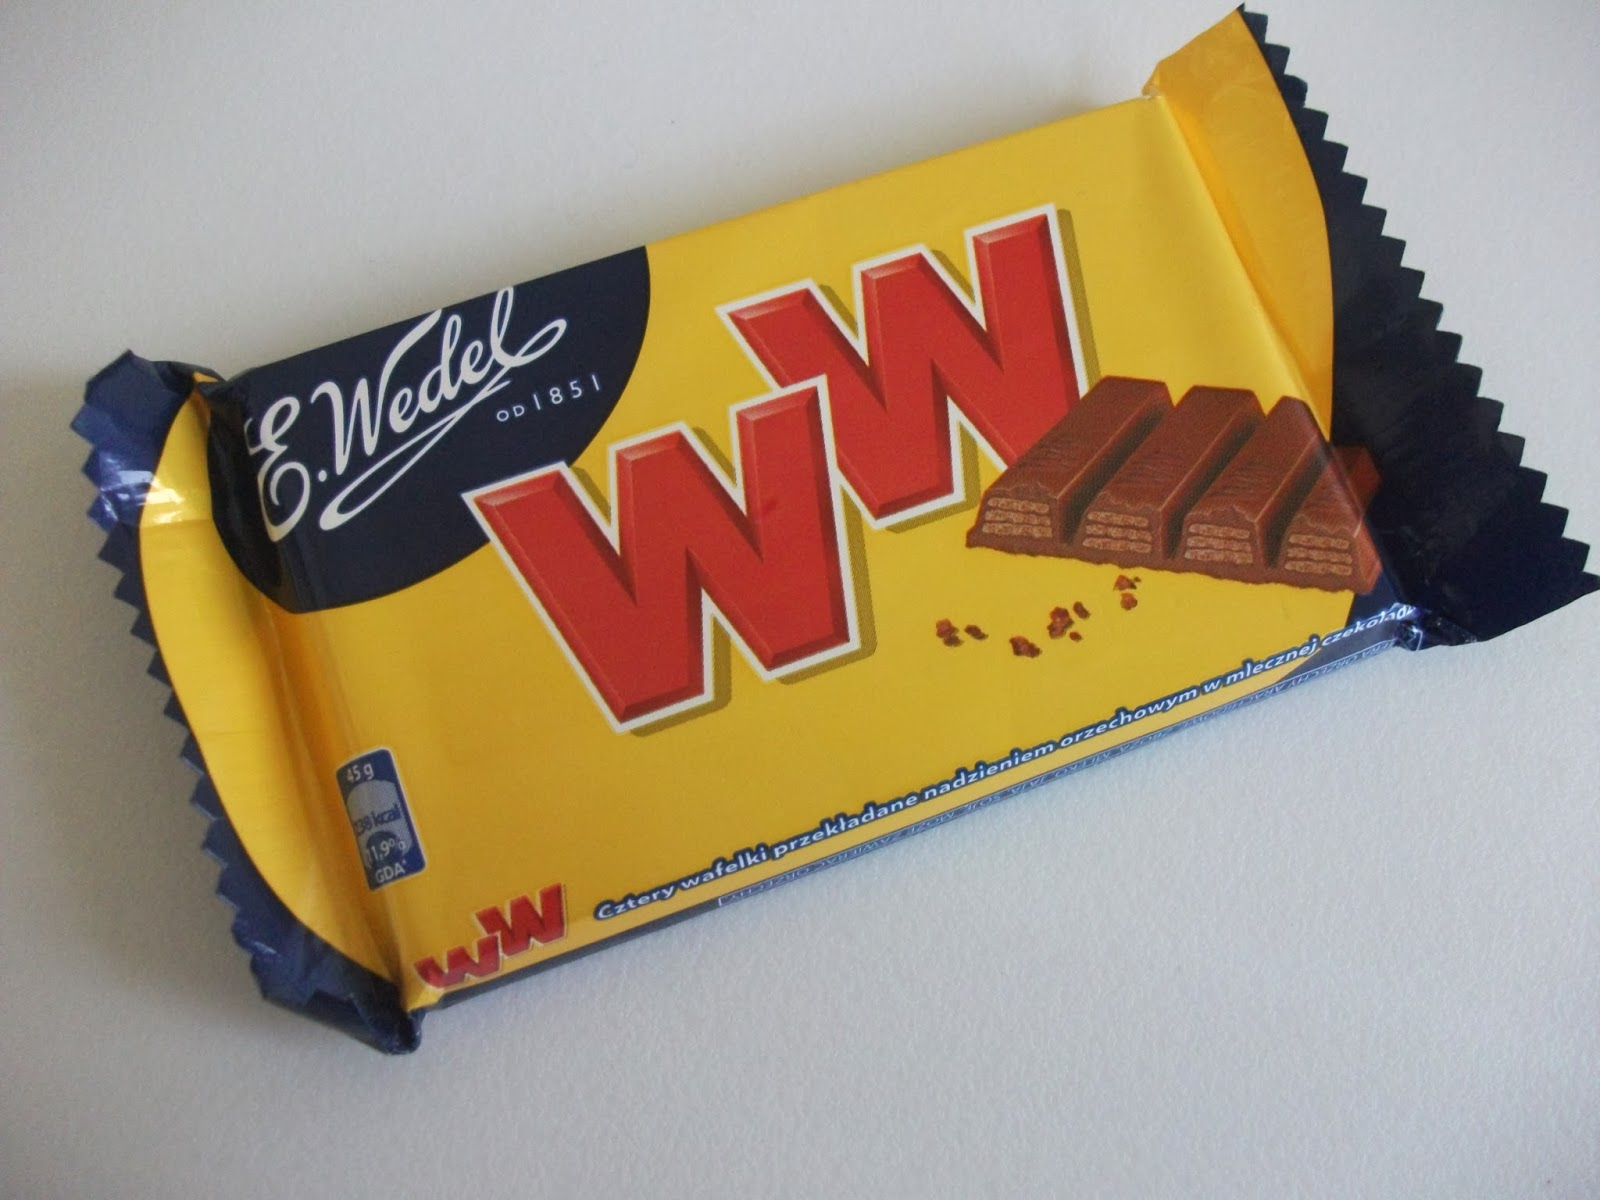 wedel ww wafer bar